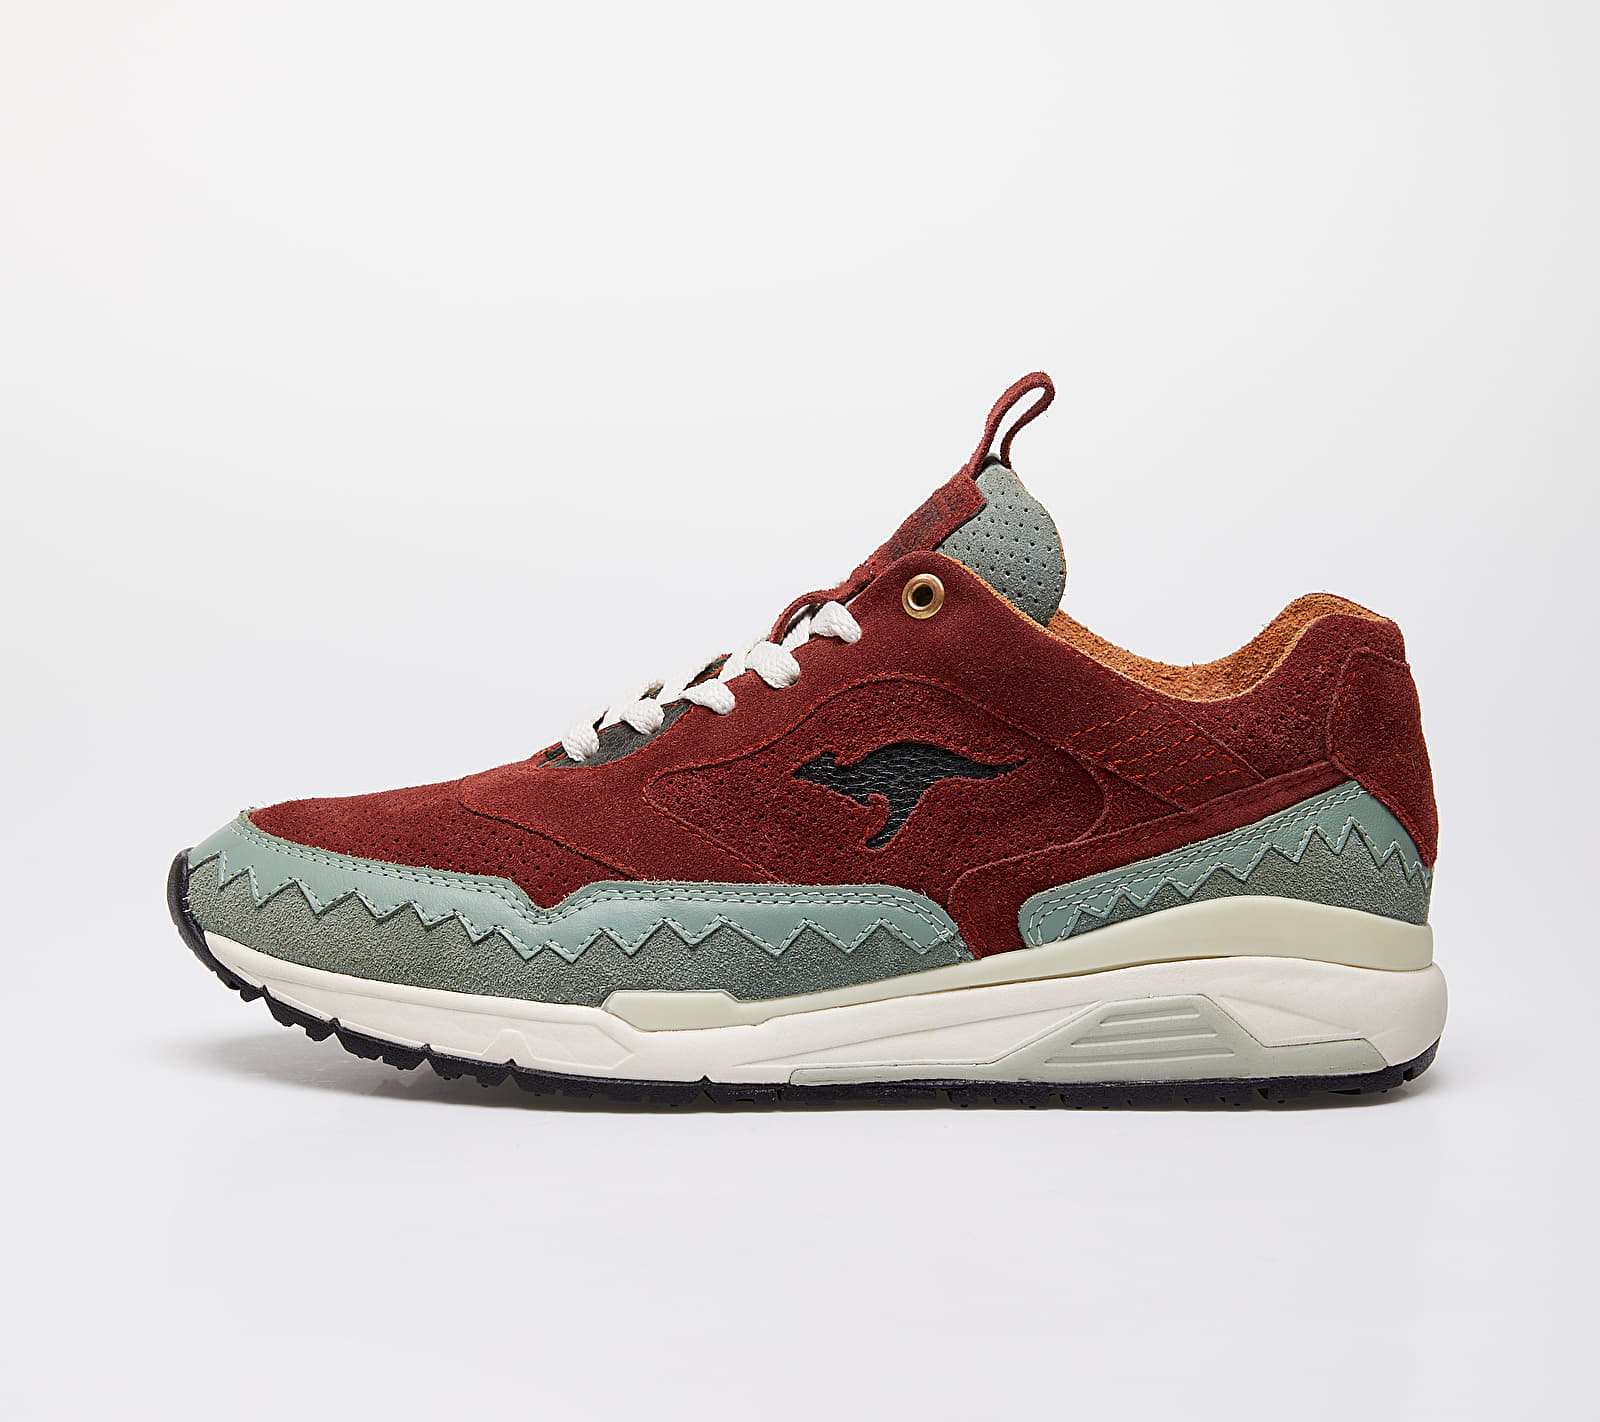 Footshop x KangaROOS Ultimate 3 The City Of A Hundred Spires EUR 37